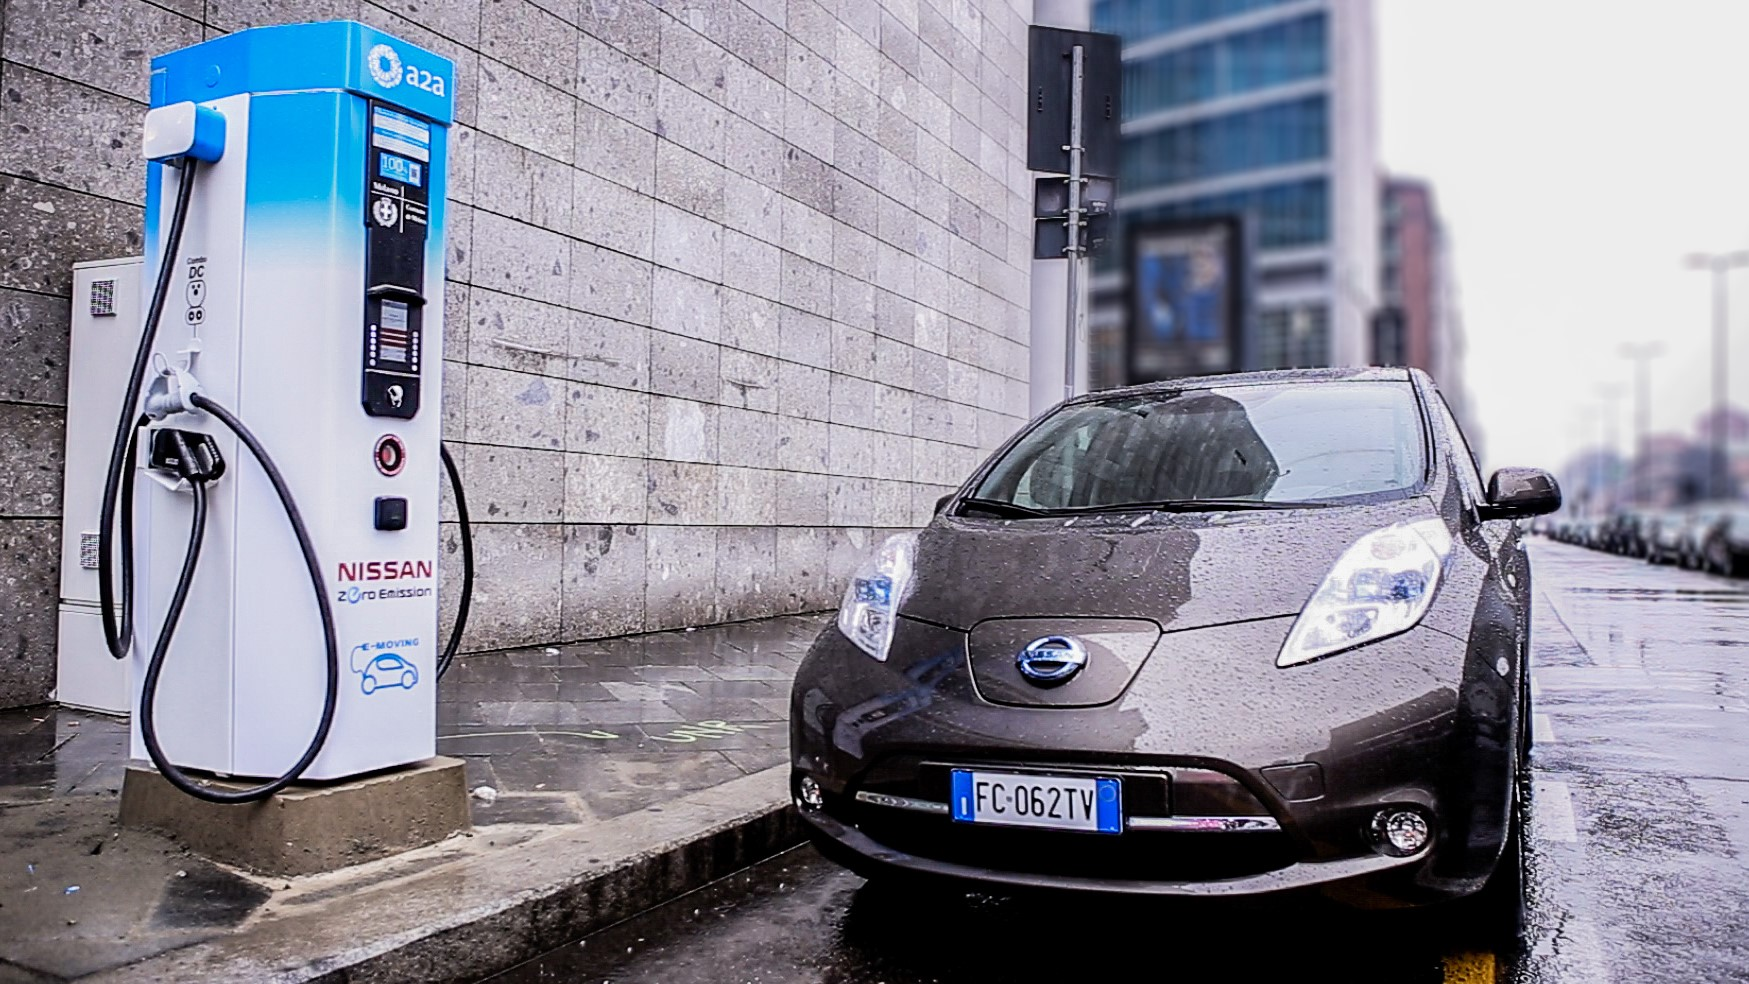 The City Of Milan Joined Forces With A2A, The Largest Italian Multi Utility  Company, And Nissan To Get Eight New Fast Charging Stations Installed In  Milan.